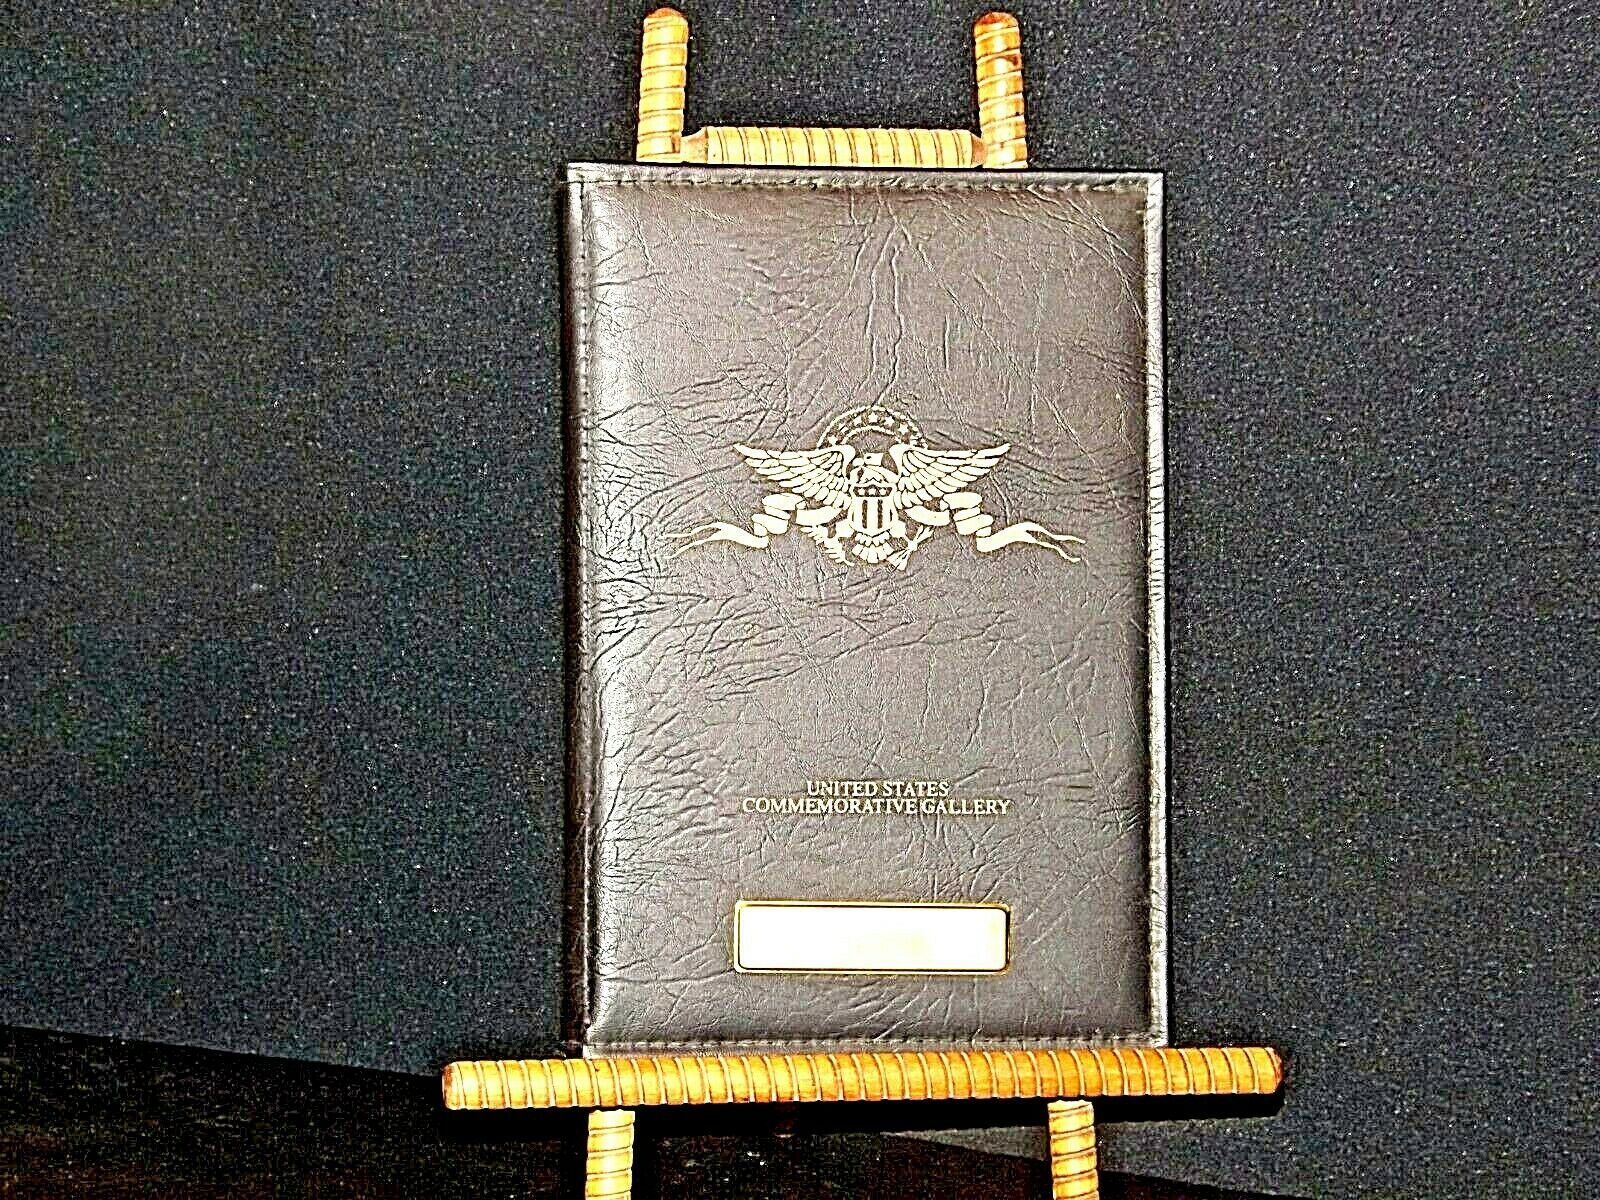 Antique Liberty Collection Hard Cover United States Commemorative GalleryAA19-